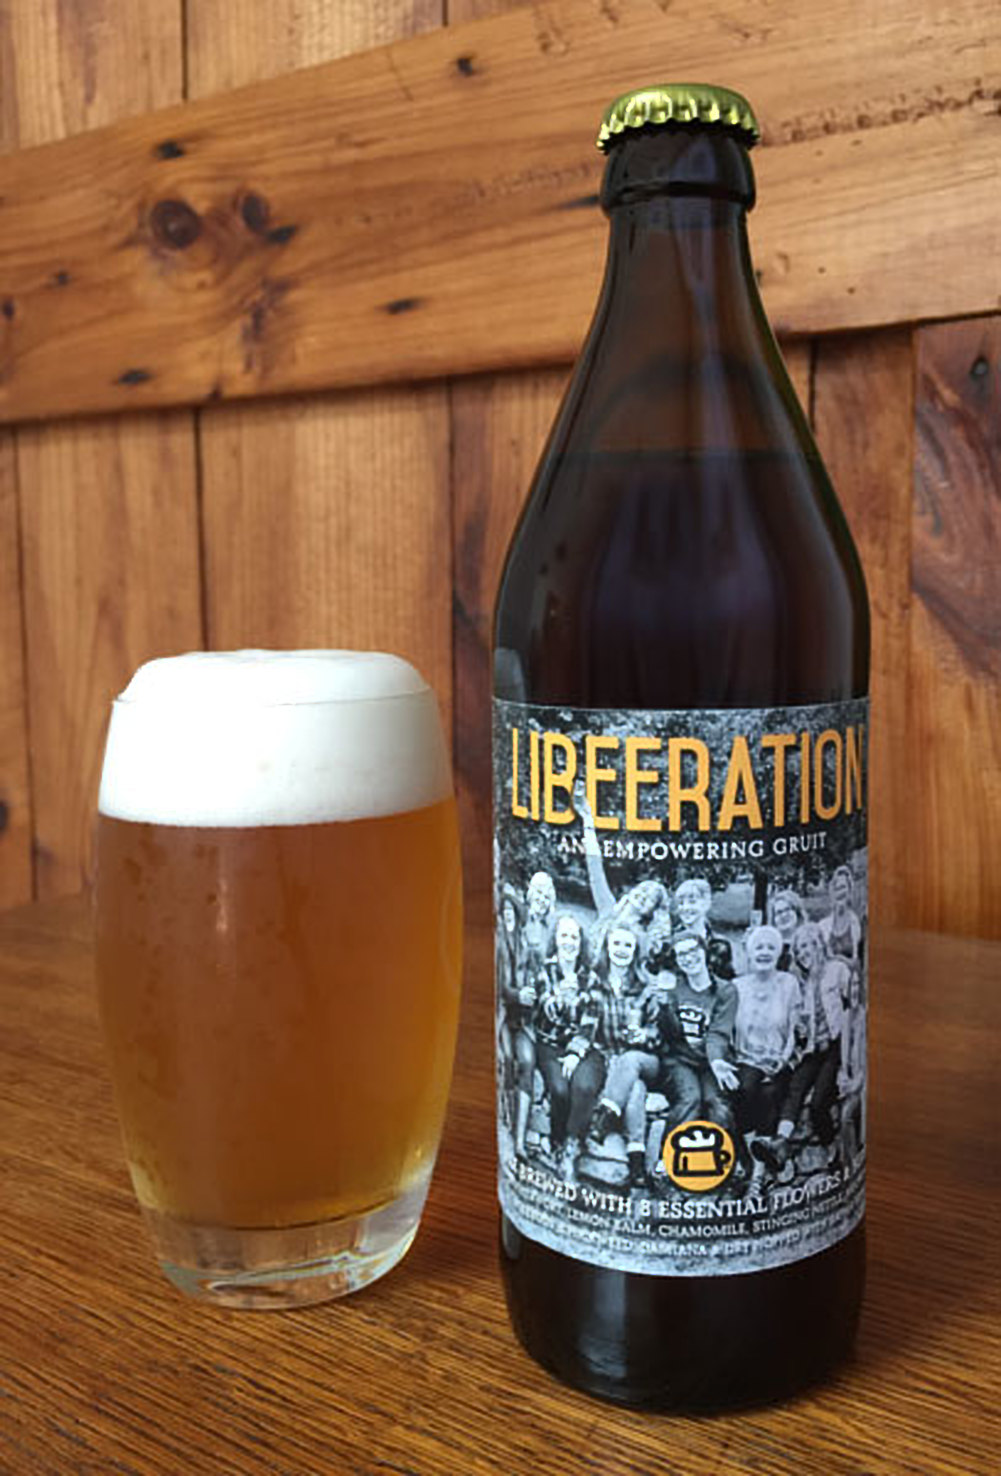 Libeeration from Portsmouth Brewery.